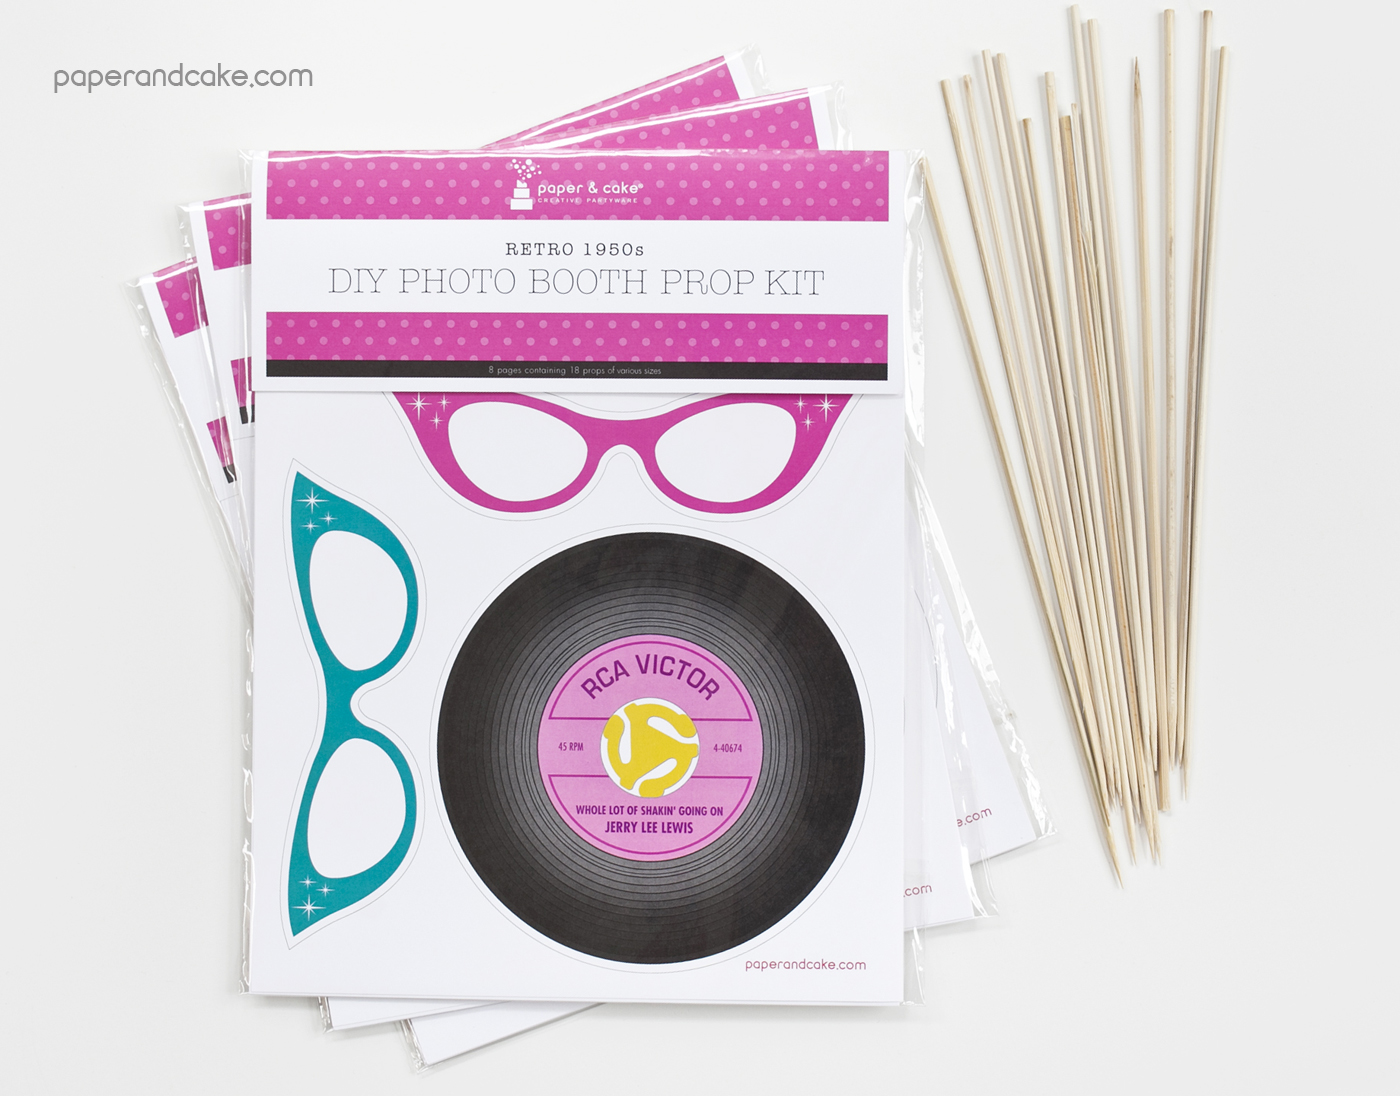 Retro 1950s Photo Booth Props DIY Kit